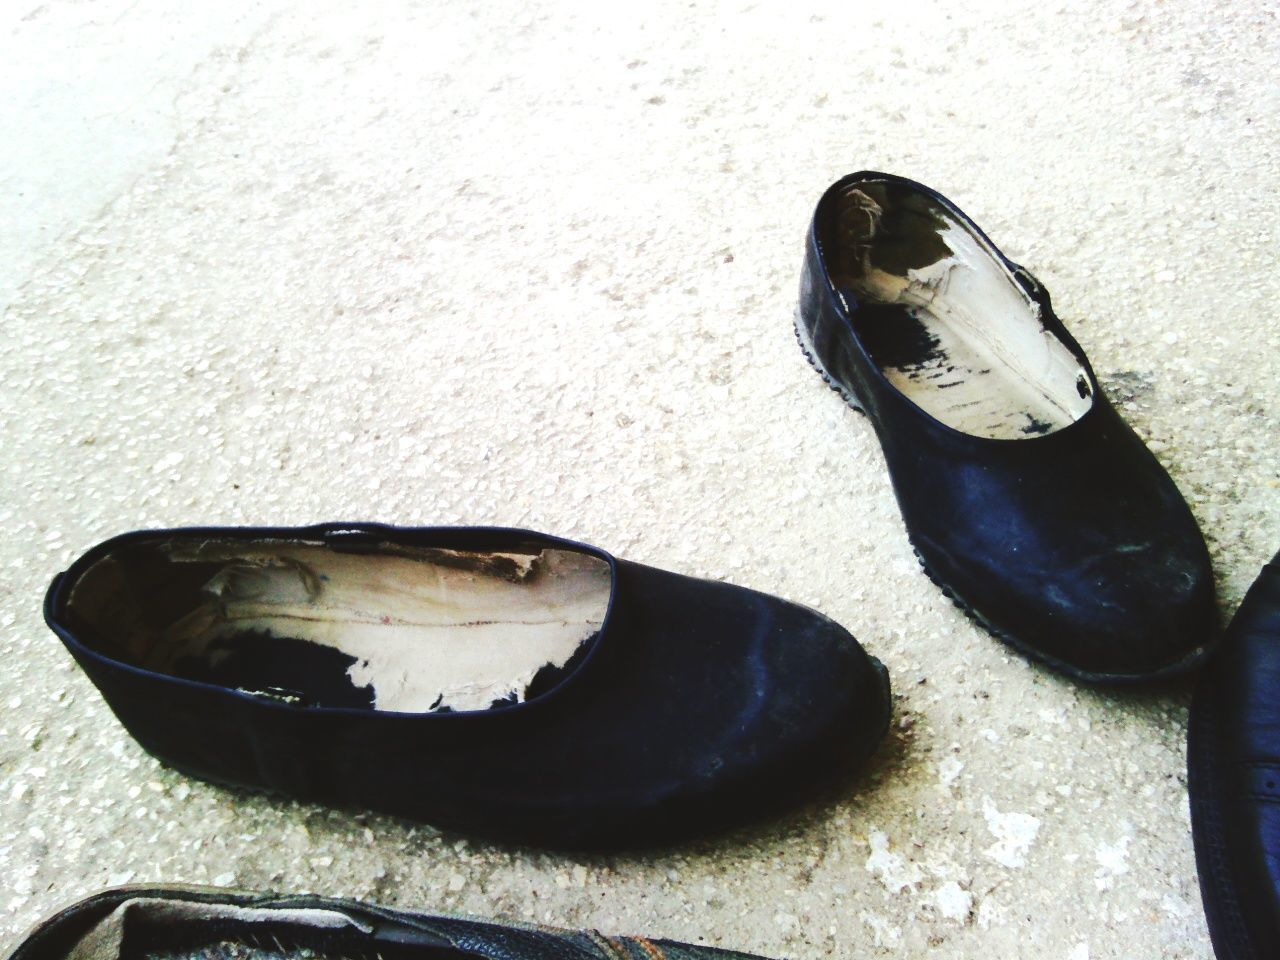 High Angle View Of Old Shoes